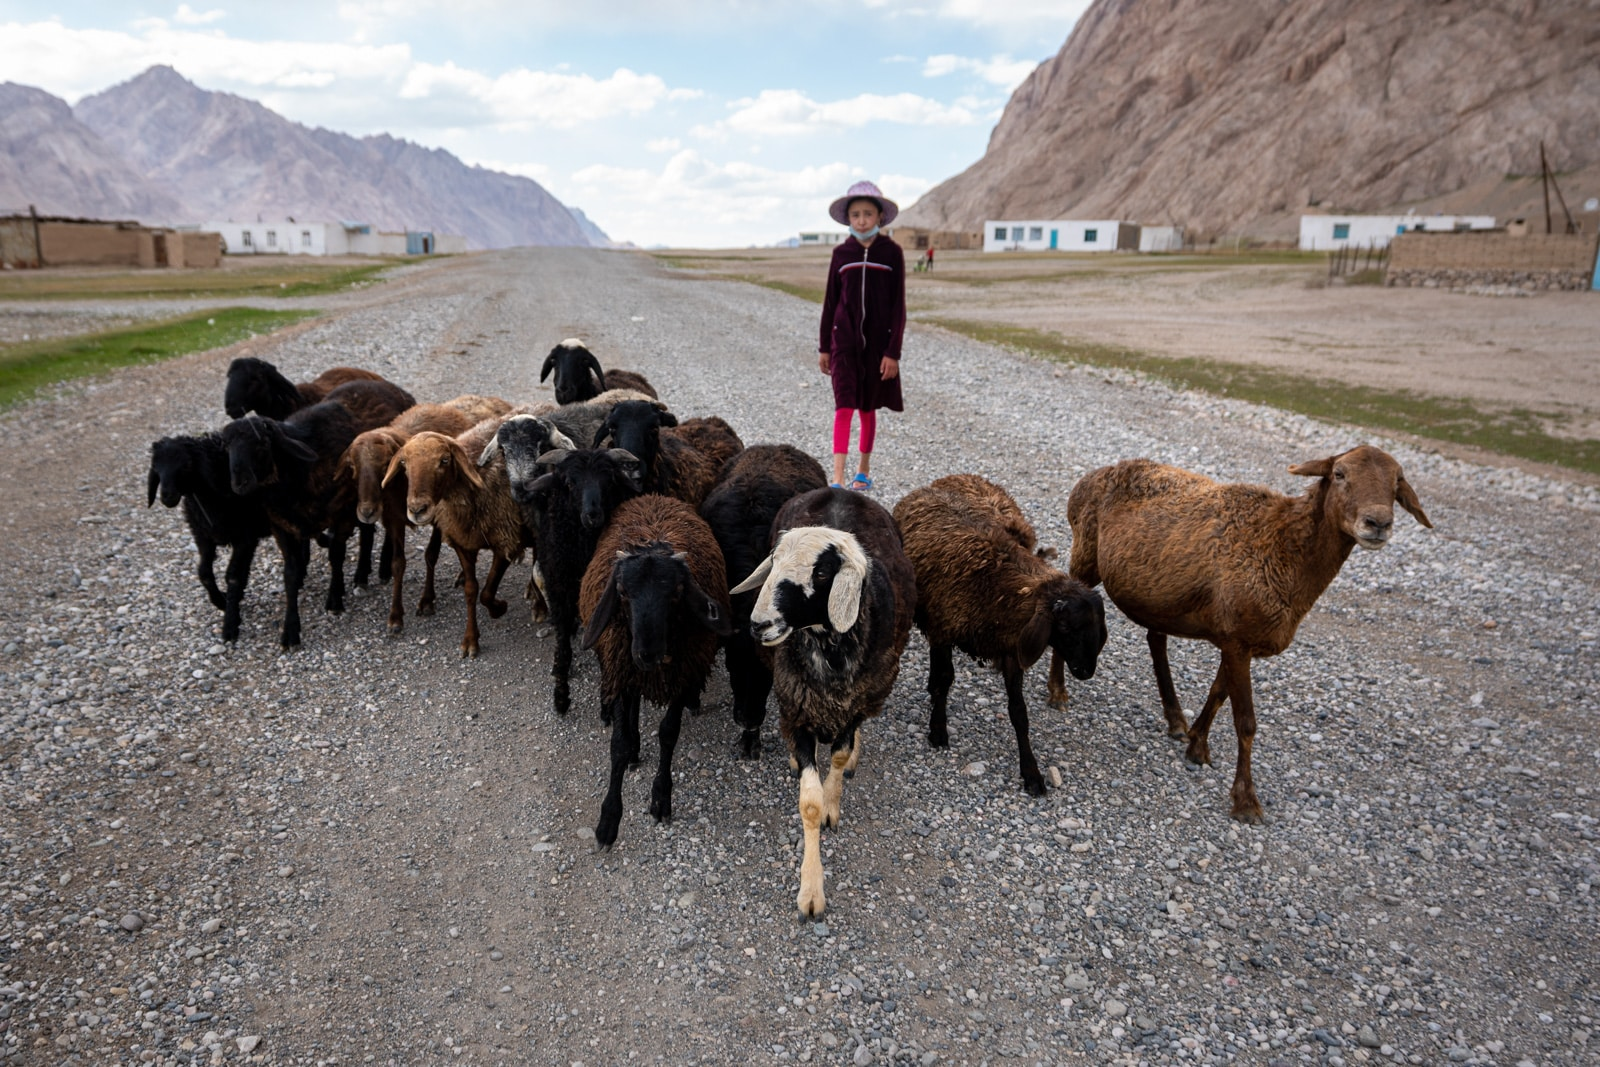 Sheep herding with homestay host in Shaimak, Tajikistan